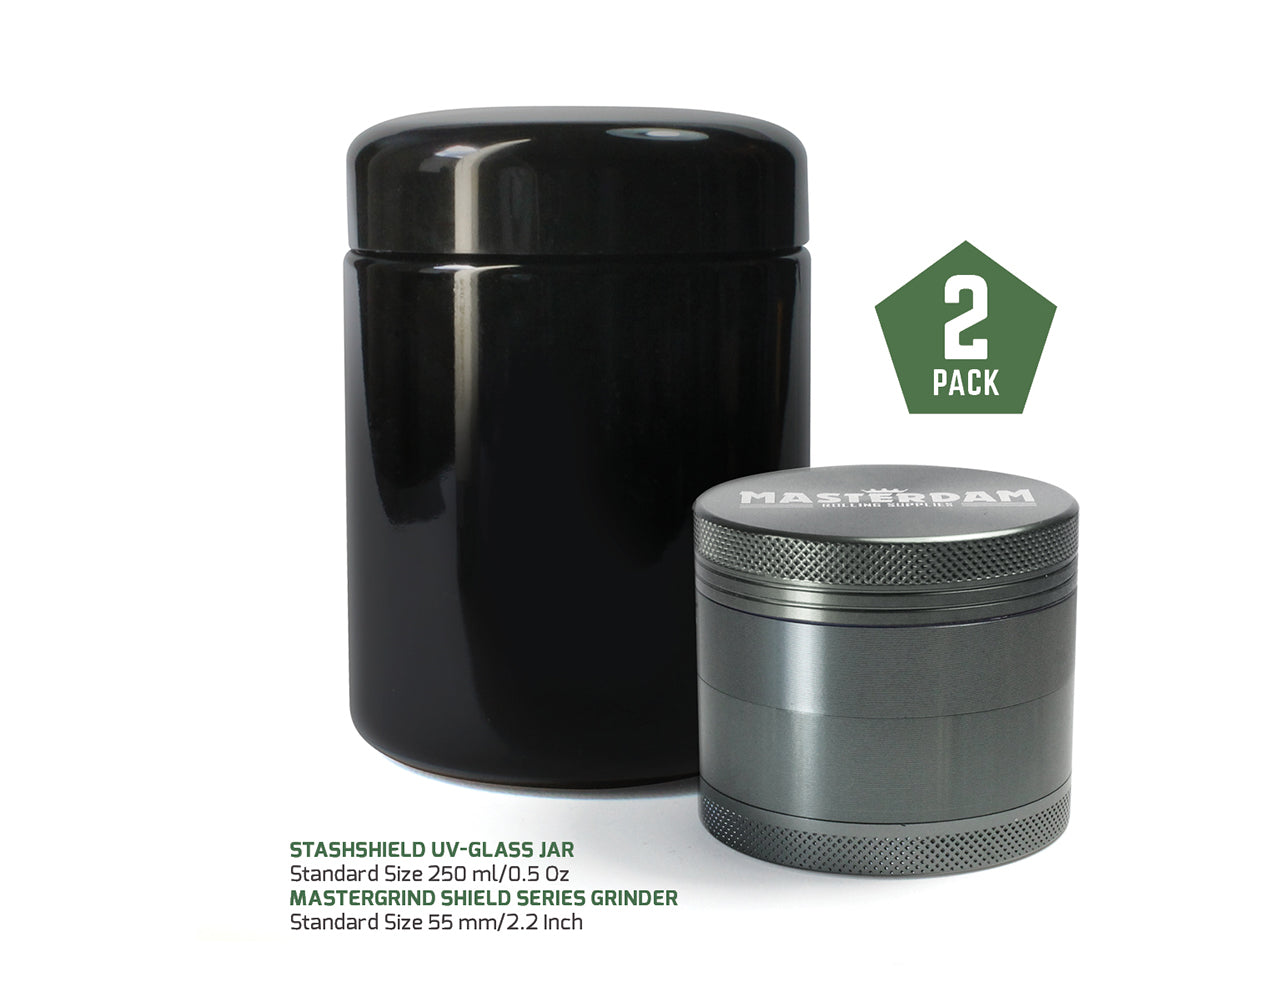 Bundle Standard Grinder & 250ml Jar, Gunmetal